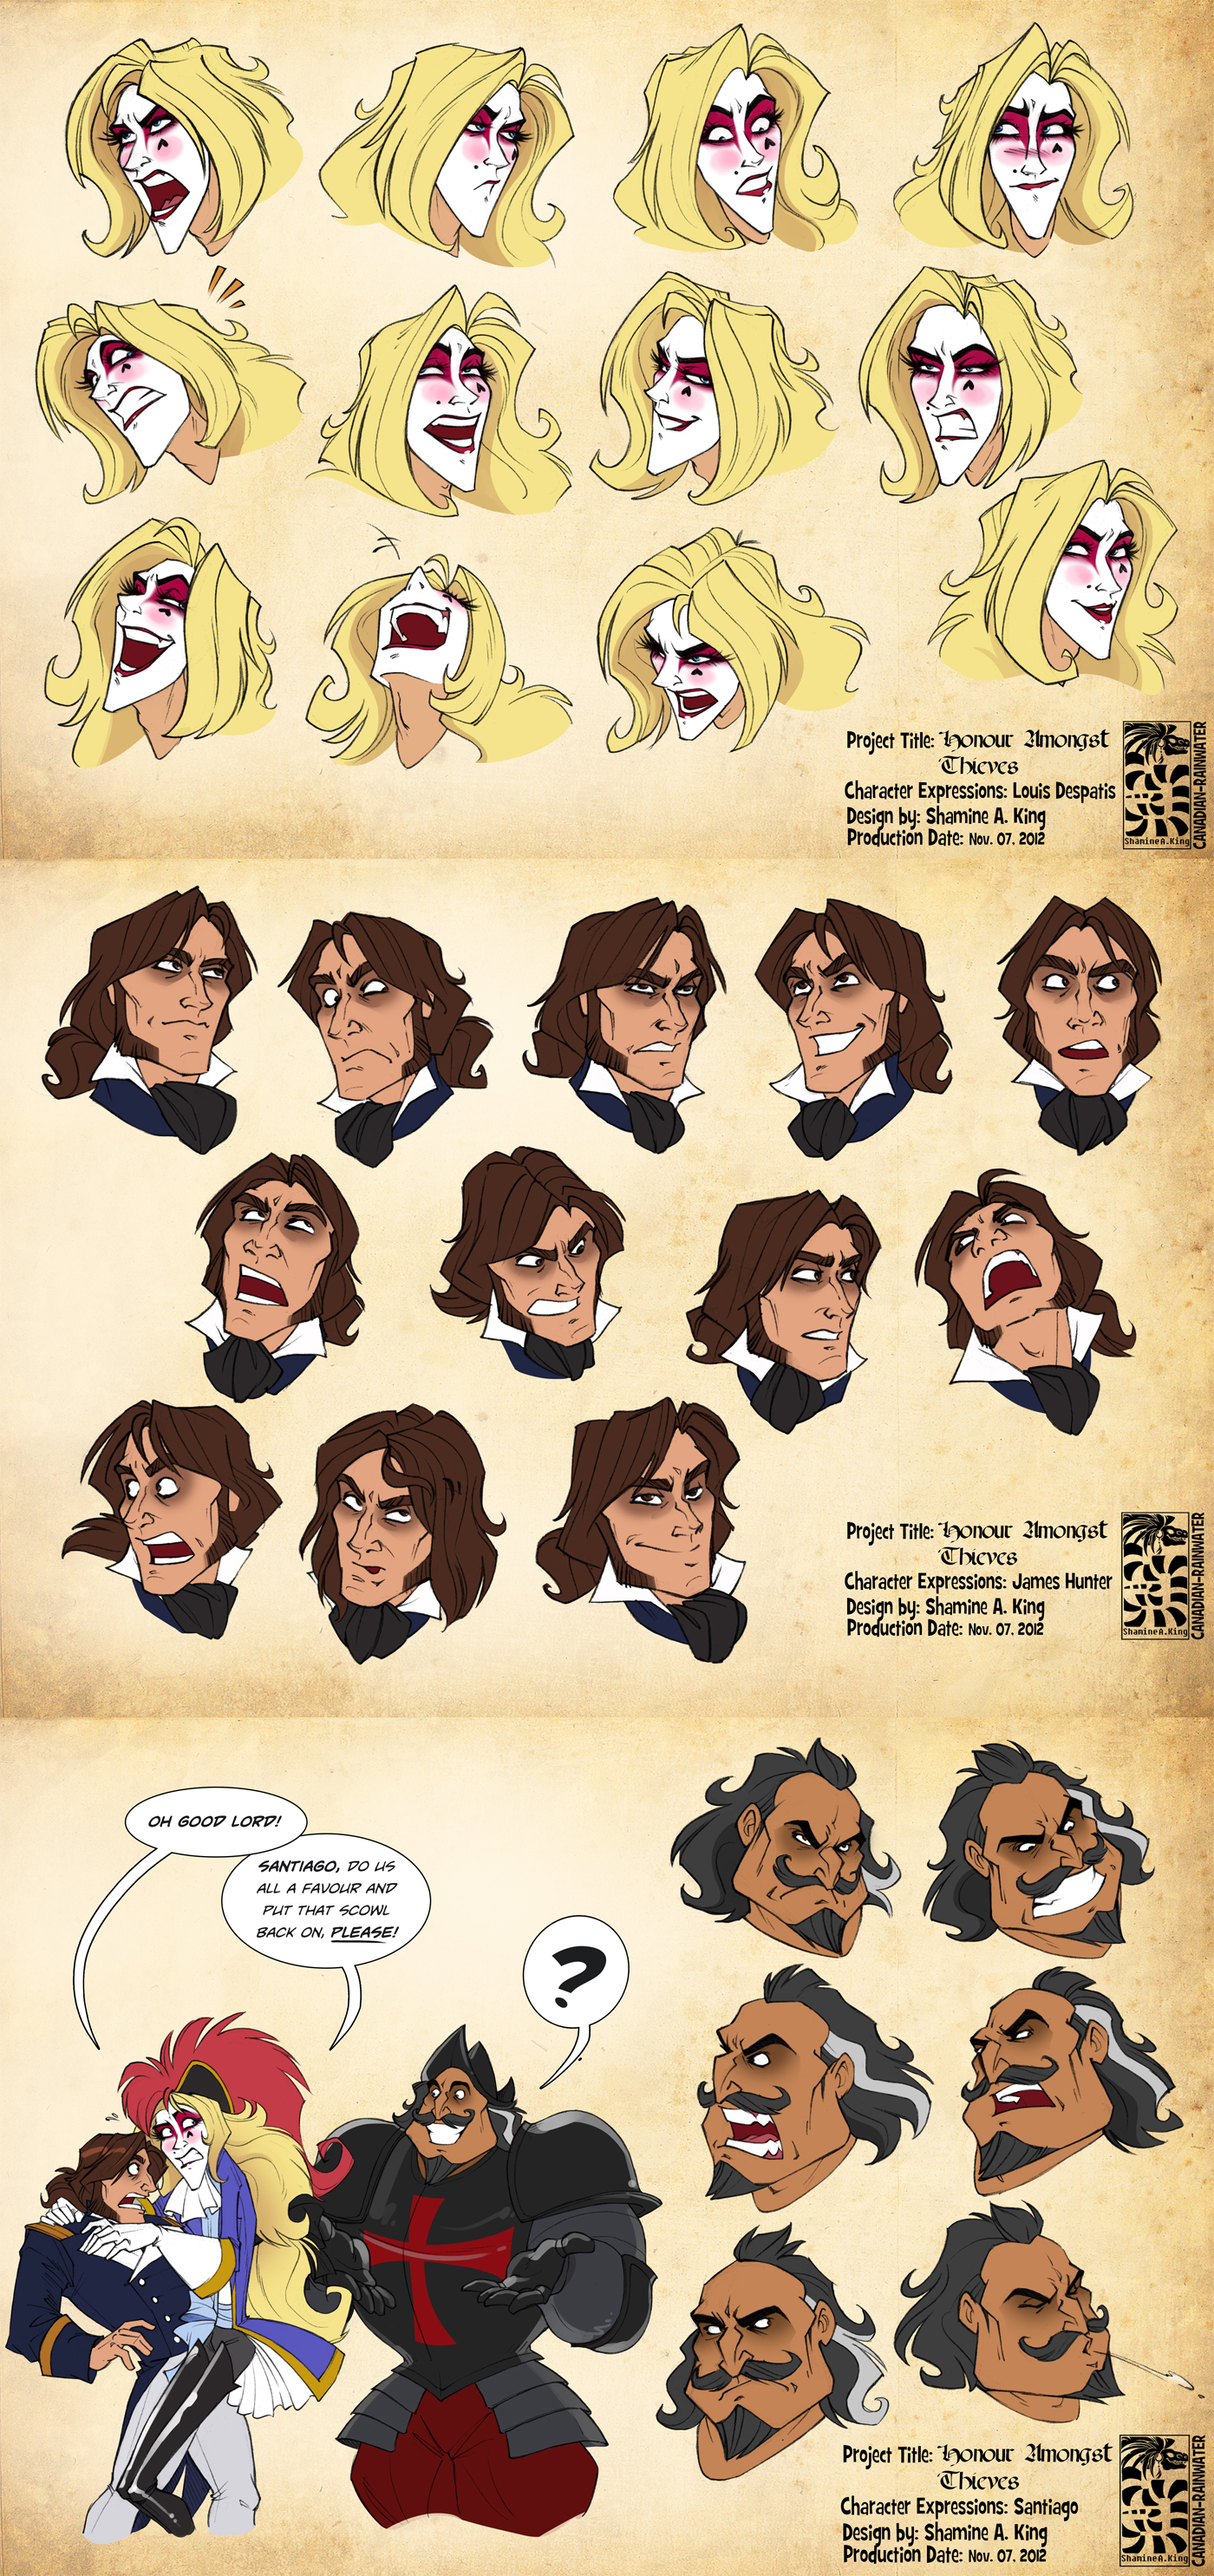 Character Expressions - Louis, James, Santiago by Canadian-Rainwater